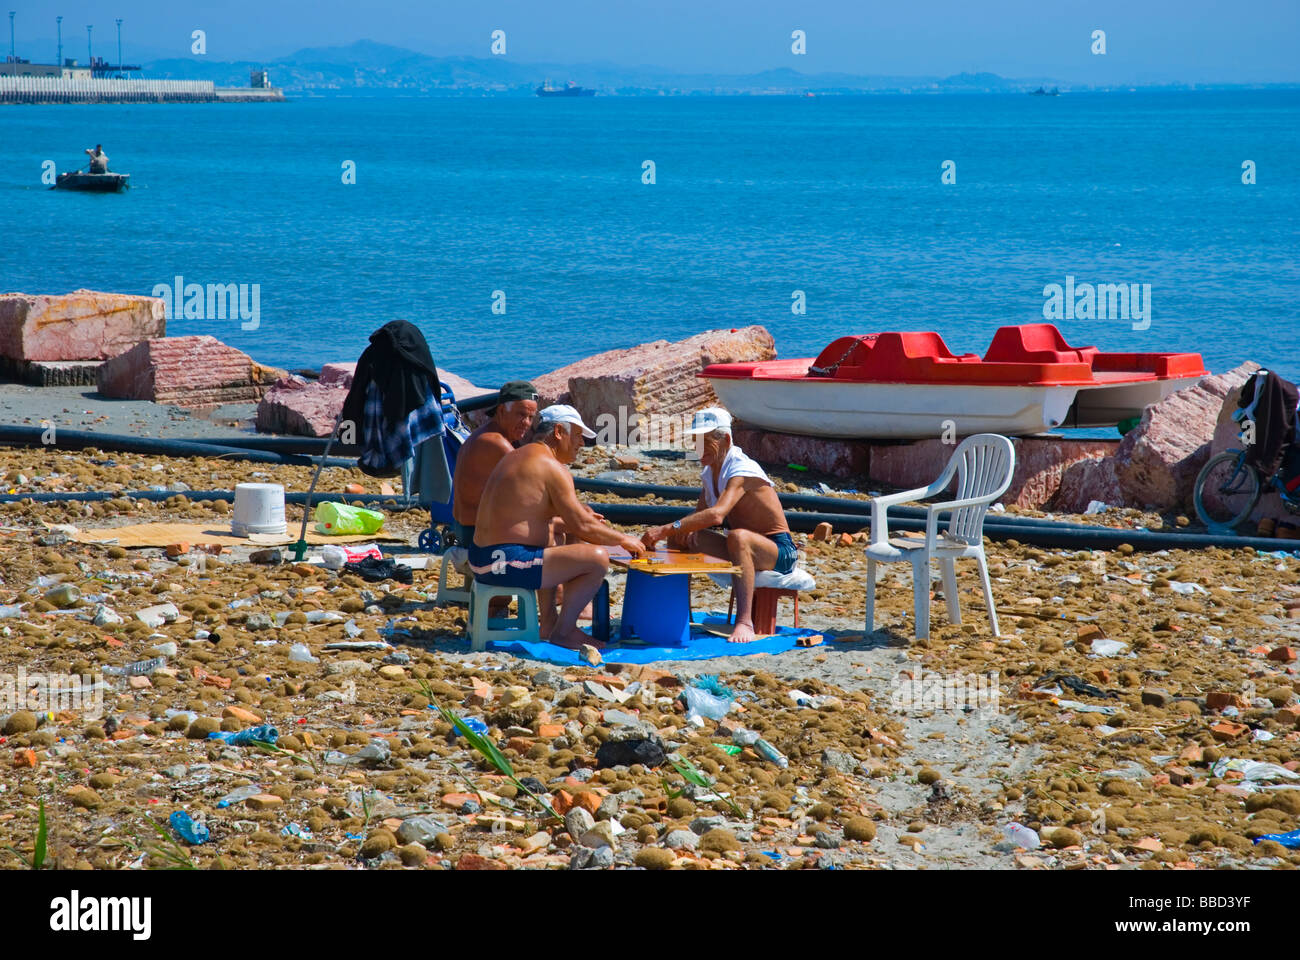 People playing a boardgame on a dirty beach in Durres Albania Europe - Stock Image